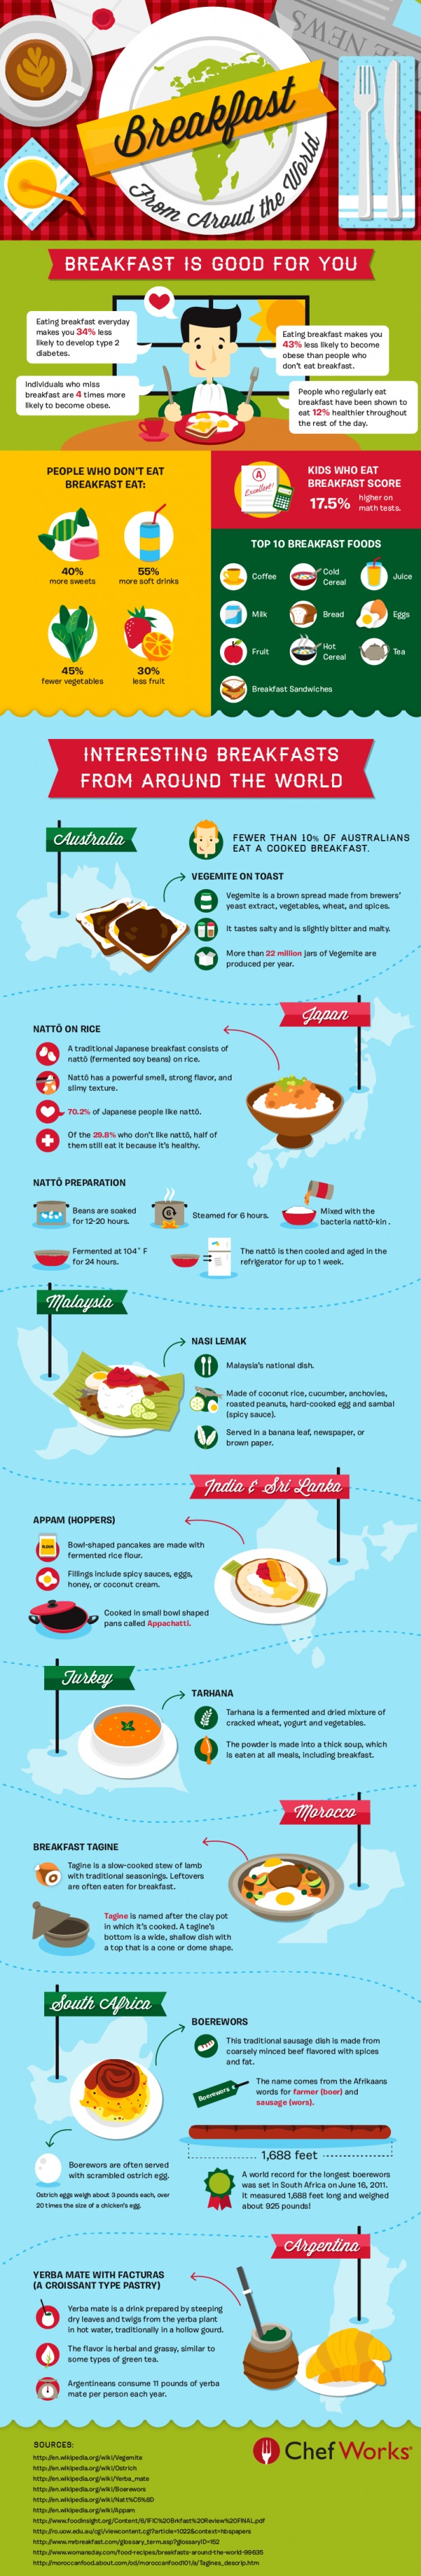 Infographic for breakfast around the world - Different types of cuisines in the world ...